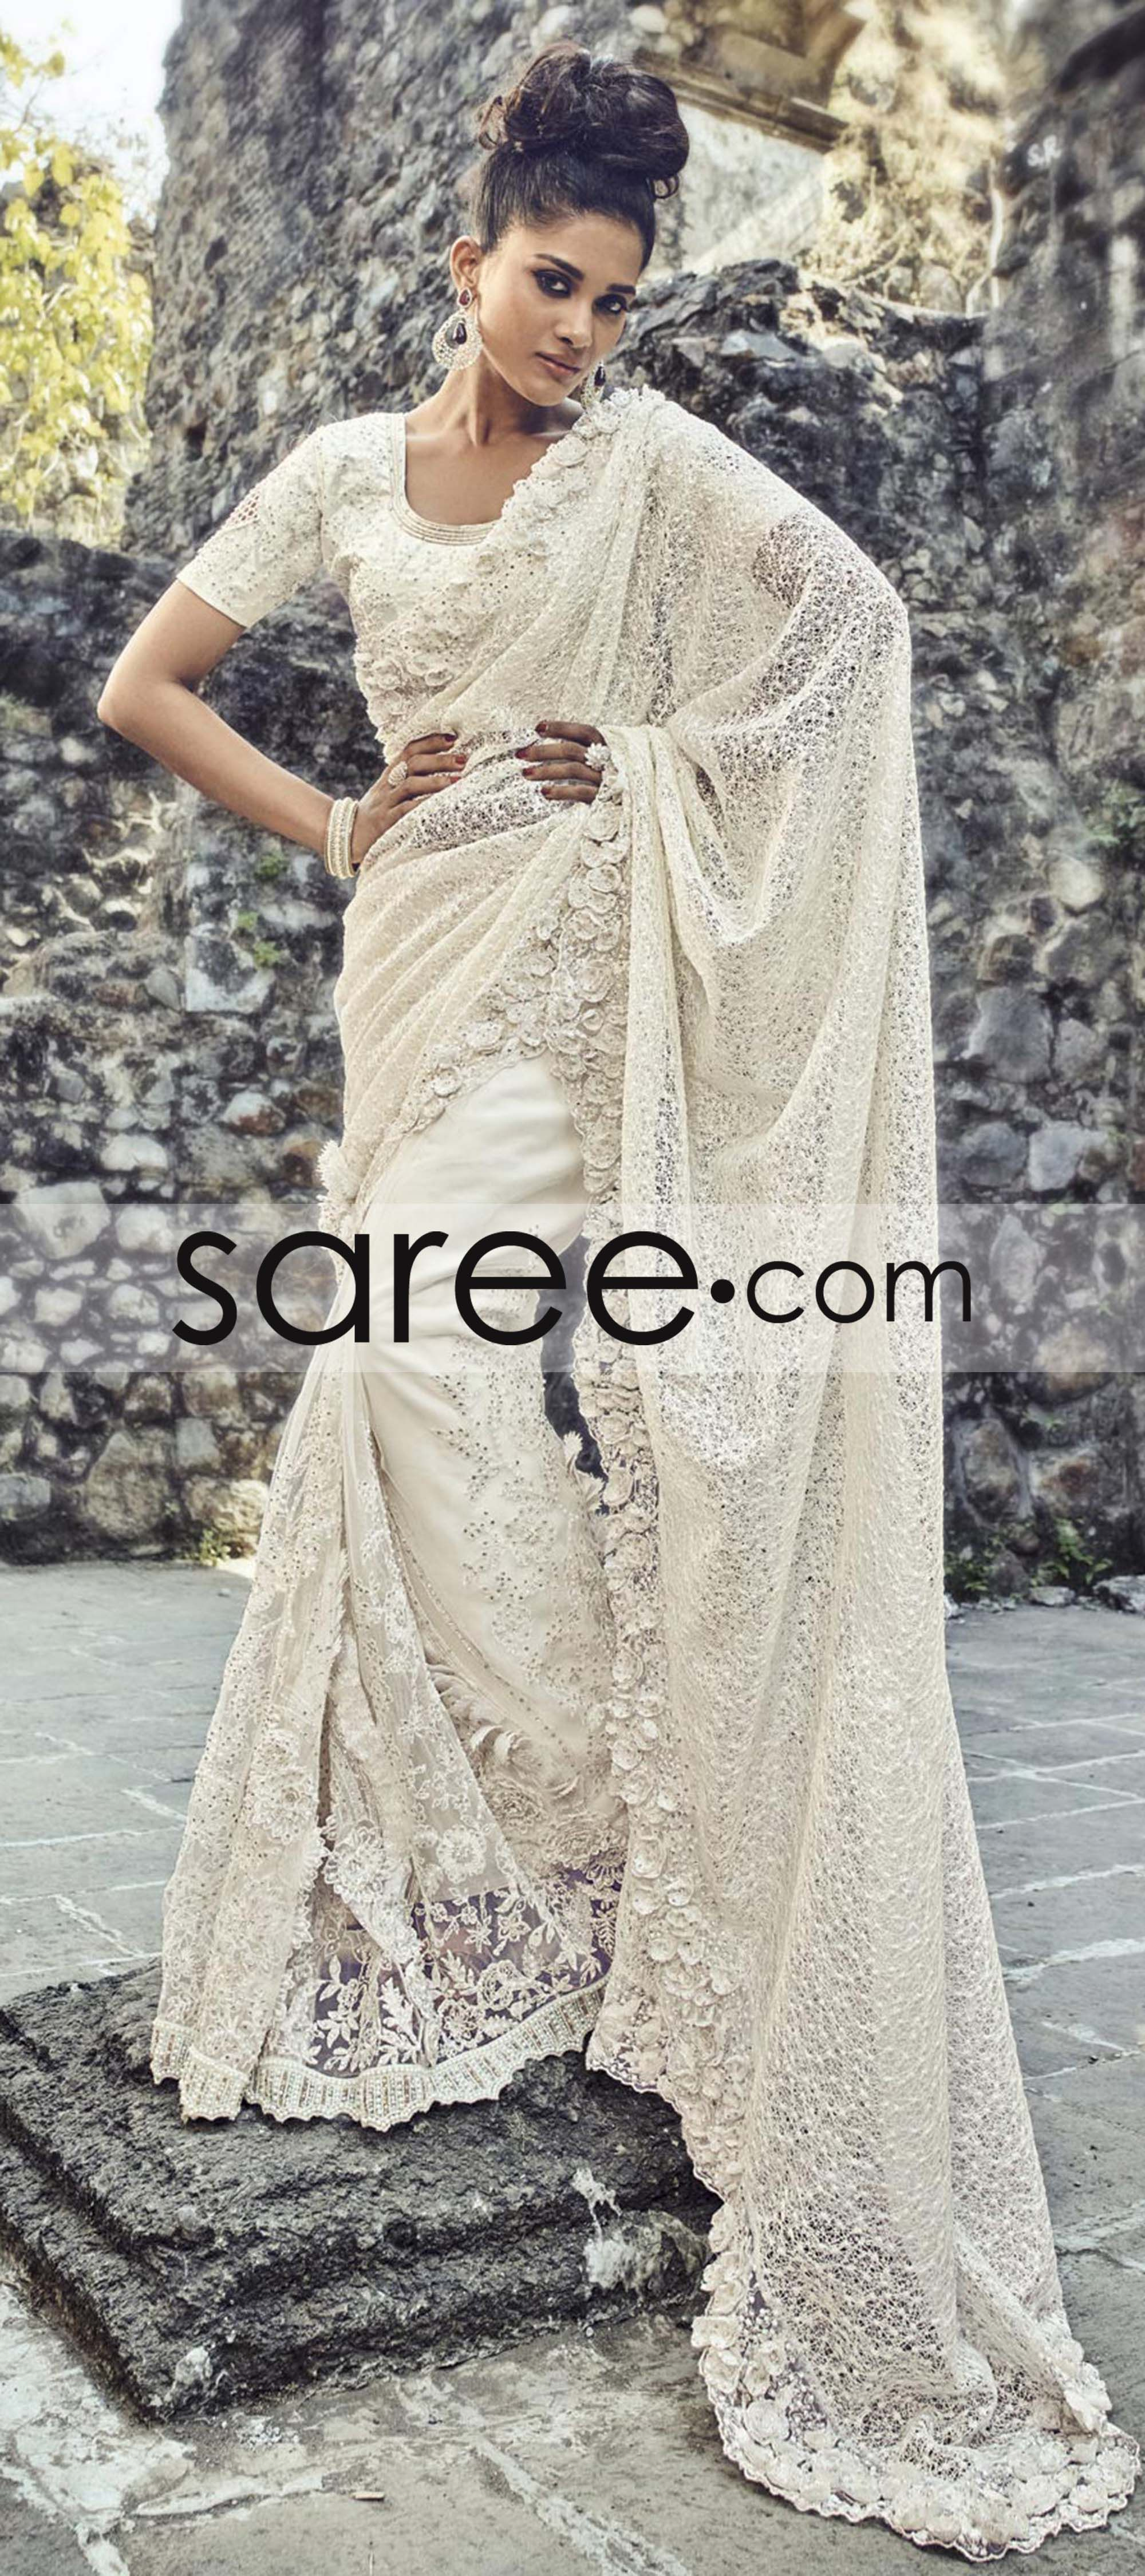 55bd16ec3d Off White Net Saree With Pearl Work Lace